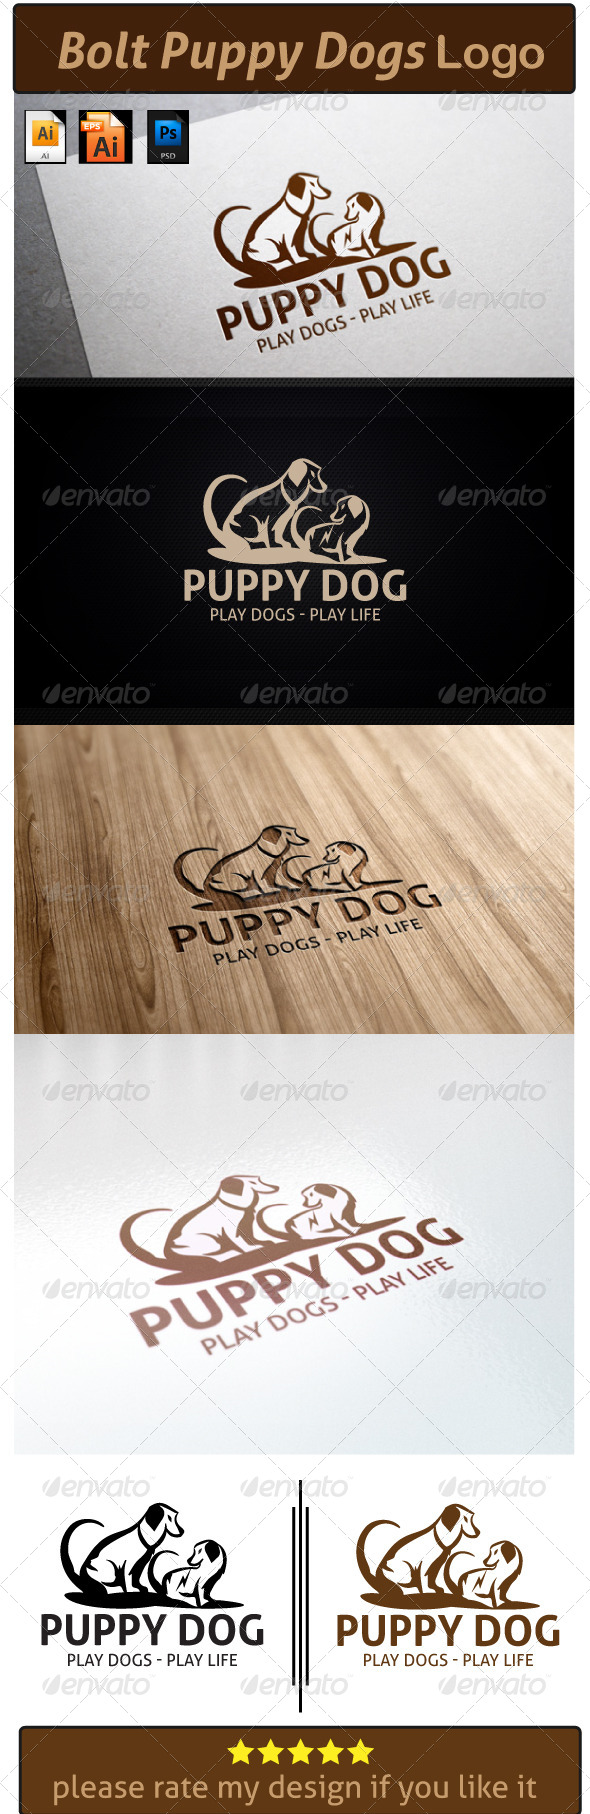 GraphicRiver Bolt Puppy Dogs Logo 6171641